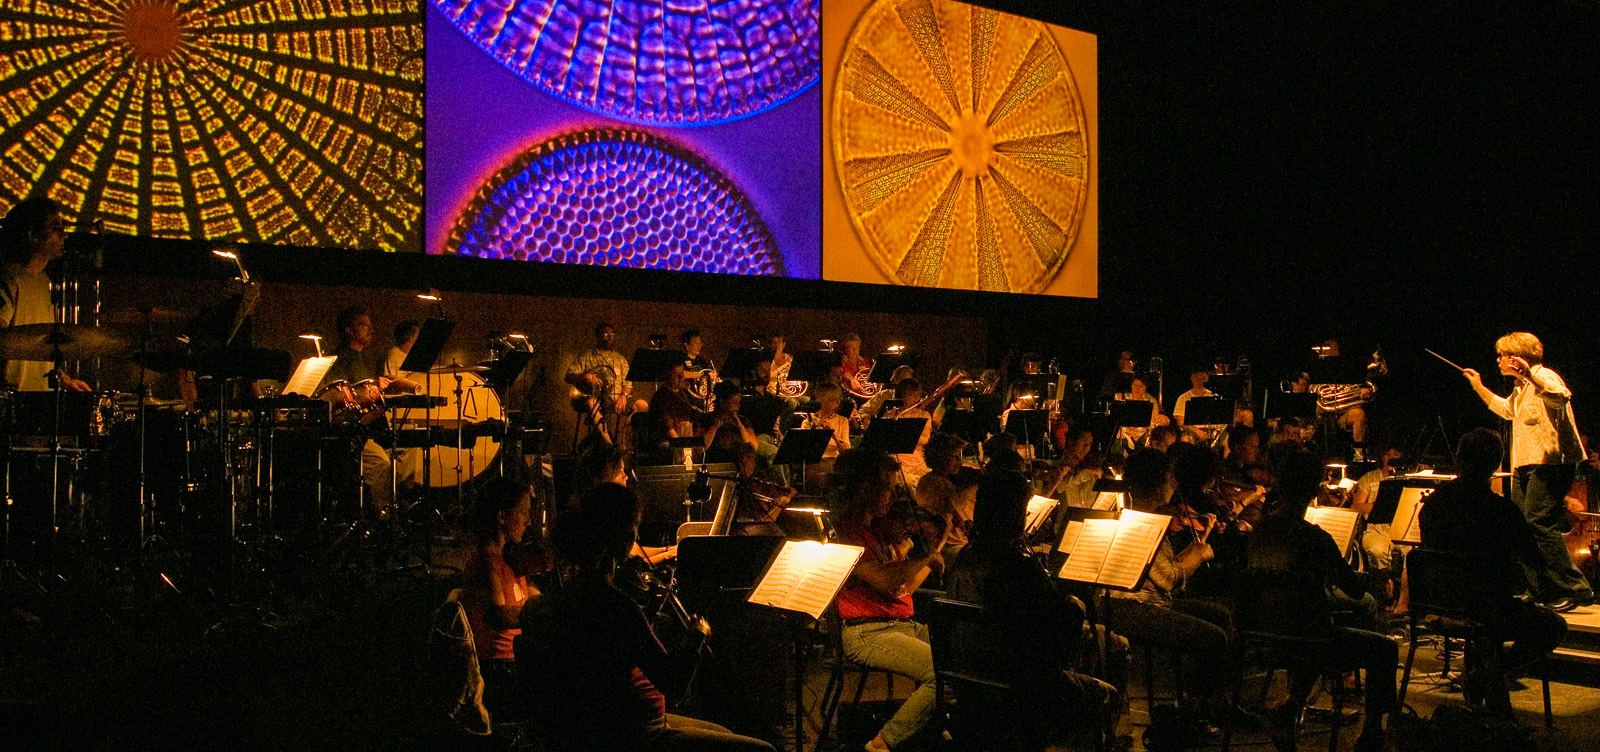 Marin Alsop conducting the multimedia performance of Frans Lanting's LiIFE; A Journey Through Time, Cabrillo Music Festival, Santa Cruz, California